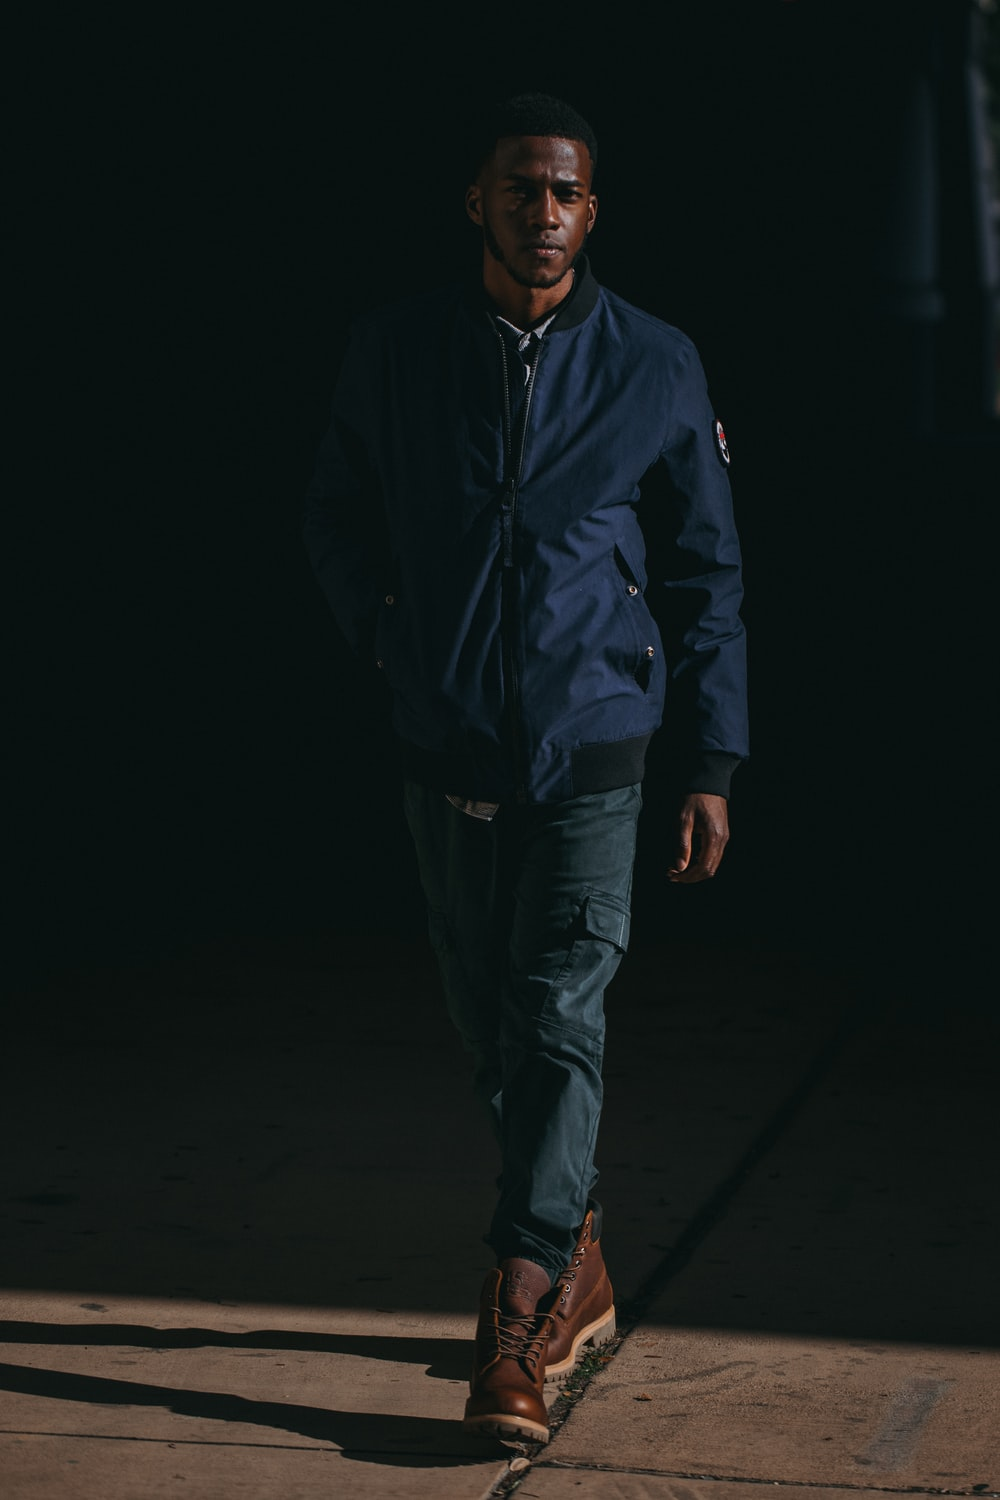 man wearing blue jacket and brown leather boots